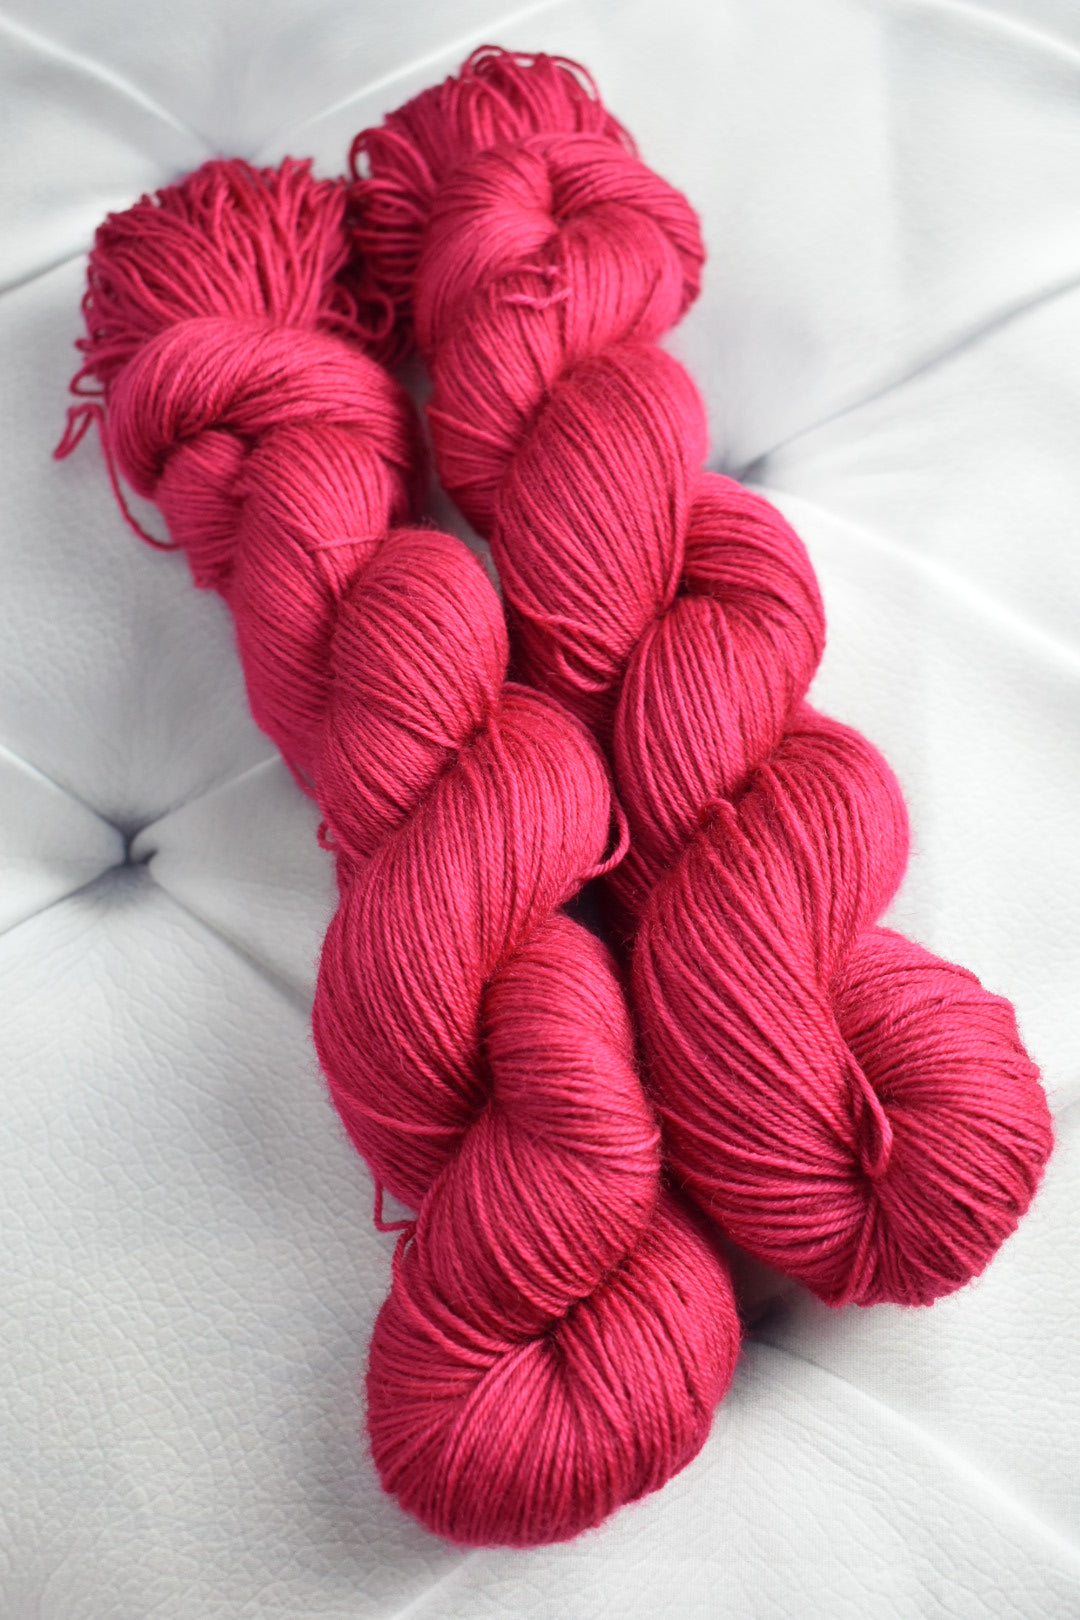 BFL Vamp Cocktail